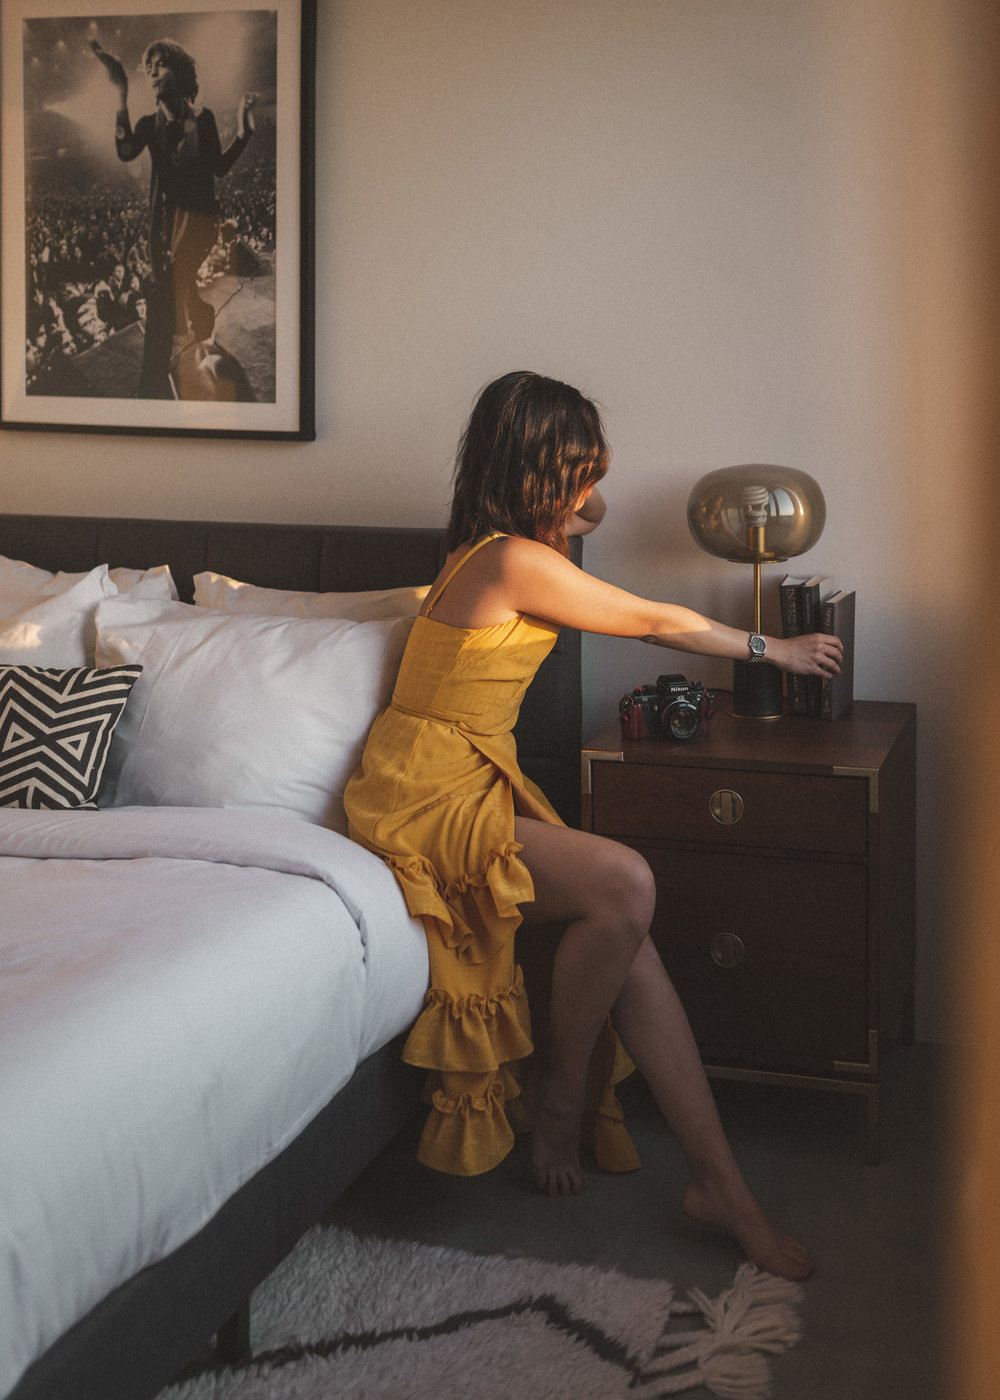 how-to-get-a-complimentary-hotel-stay-as-a-blogger-by-lisa-linh